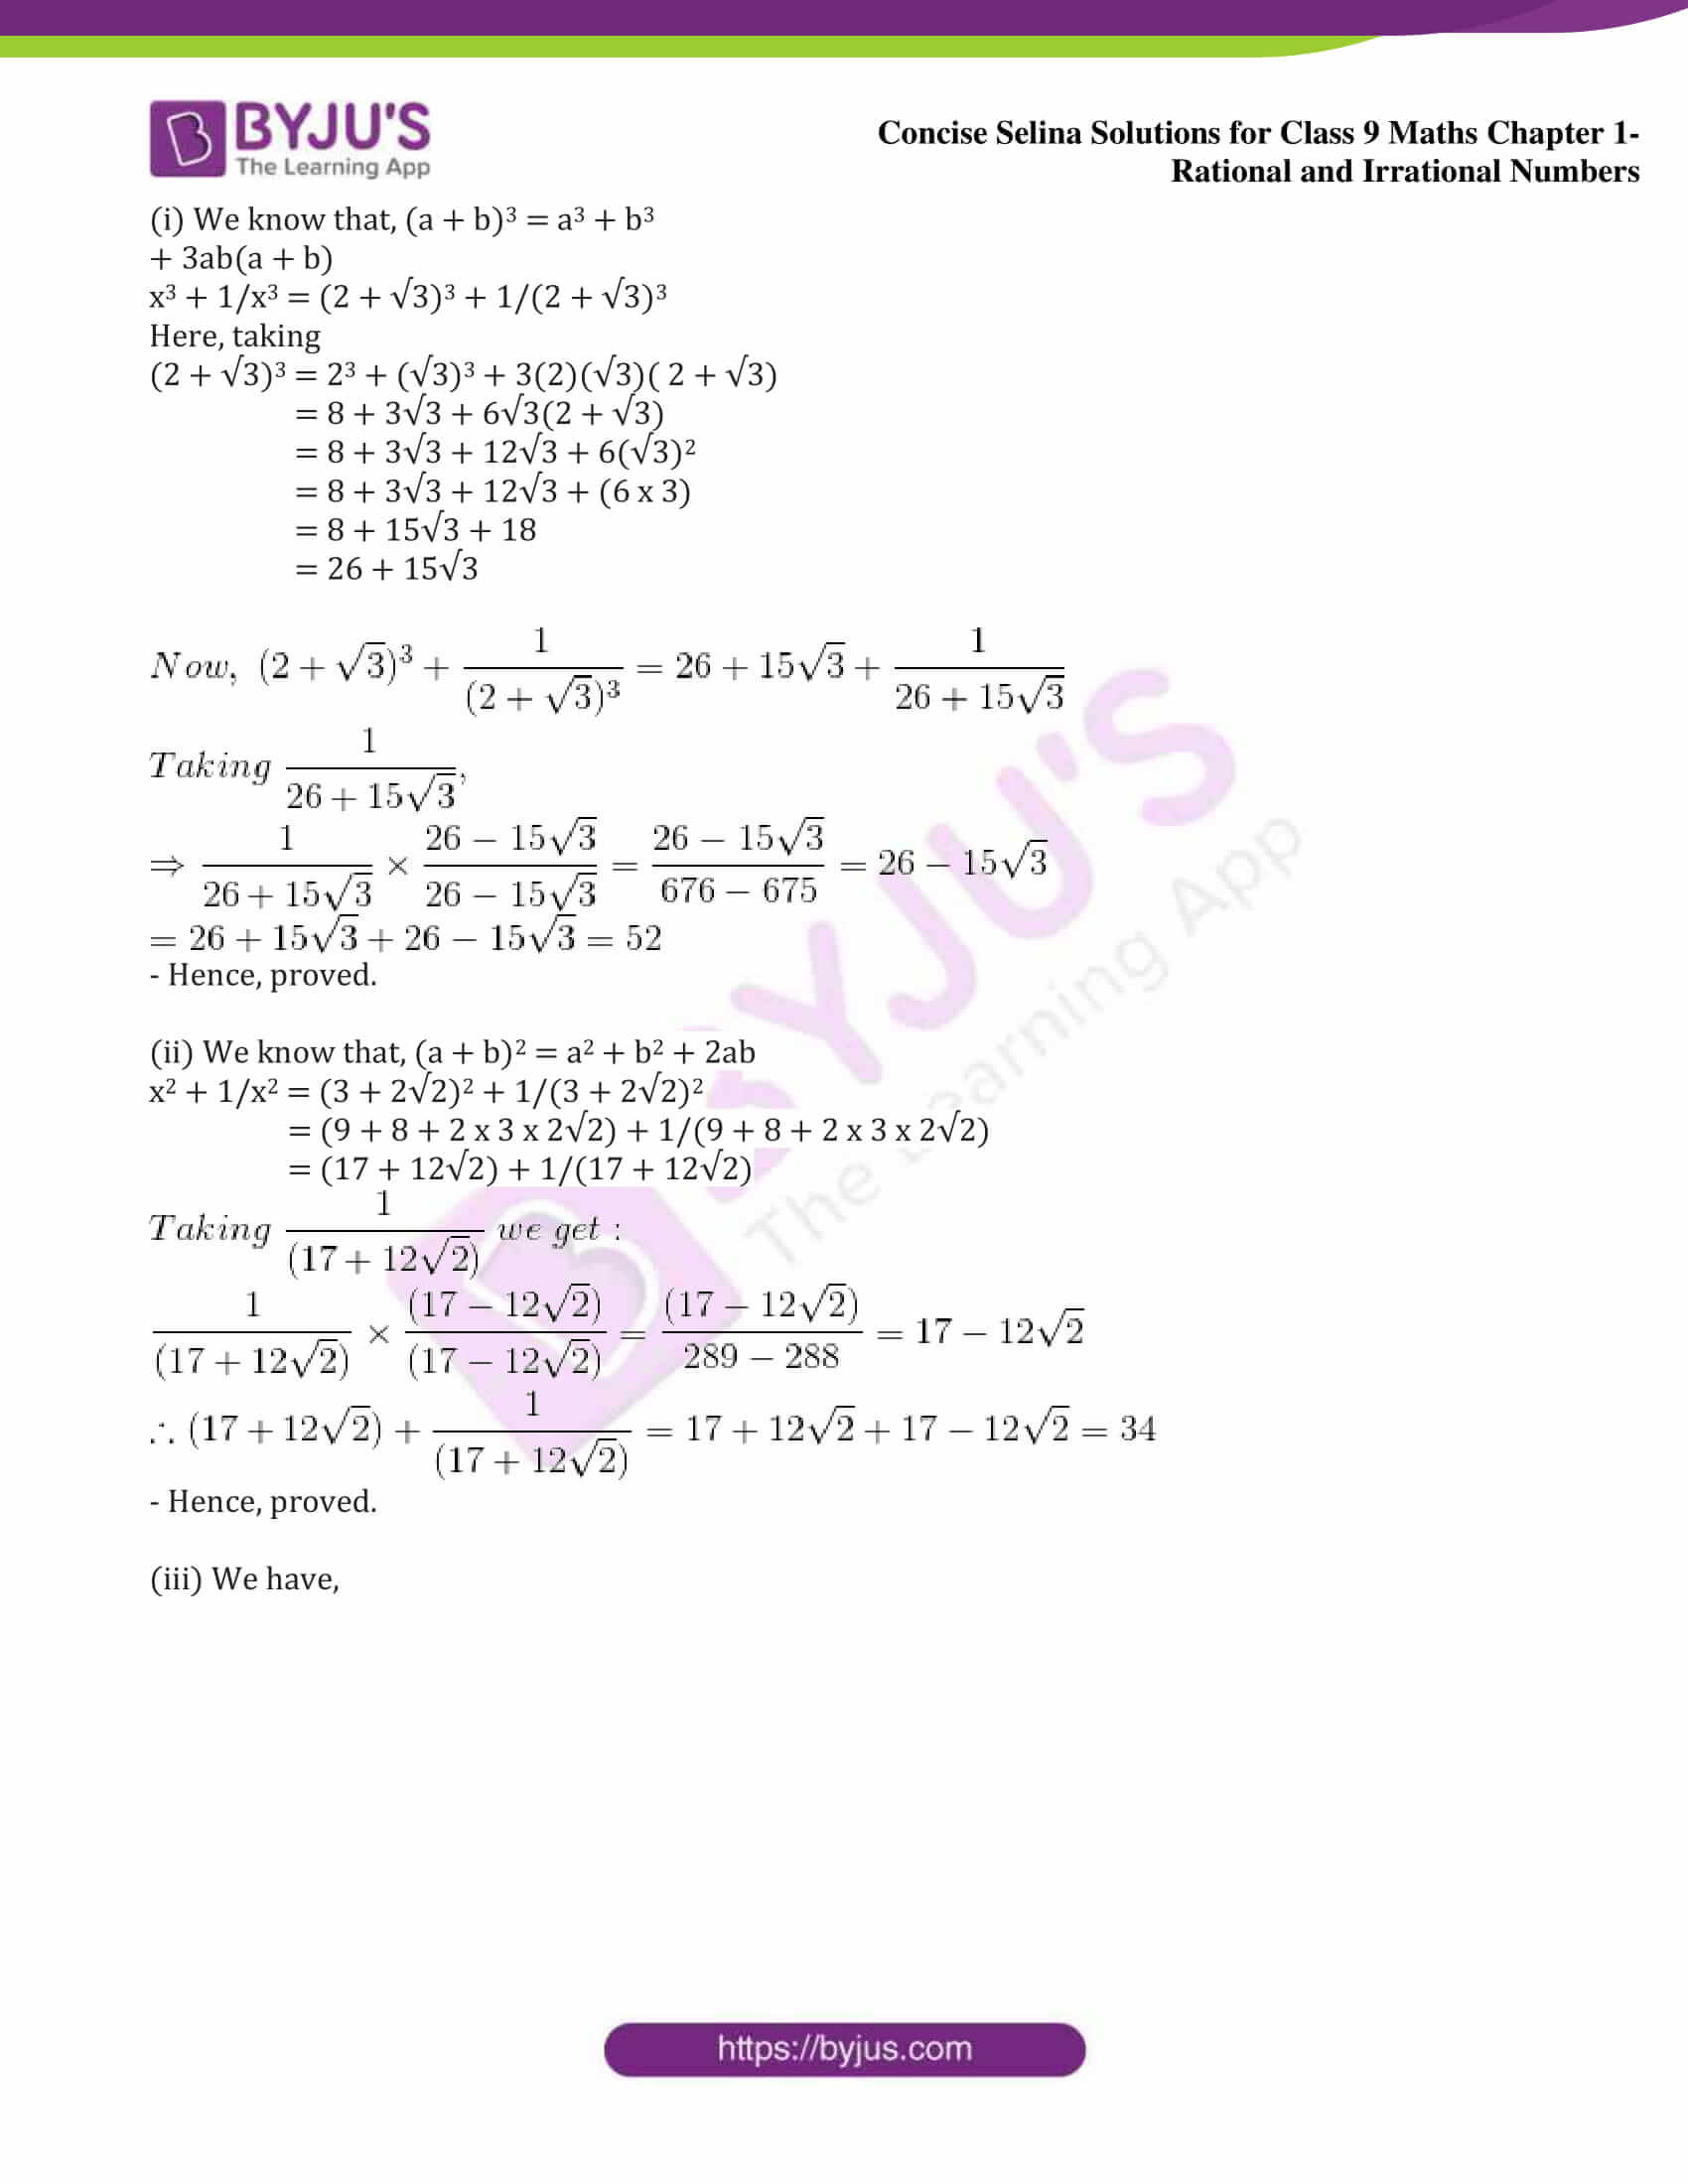 icse class 9 maths may13 selina solutions chapter 1 rational and irrational numbers 40